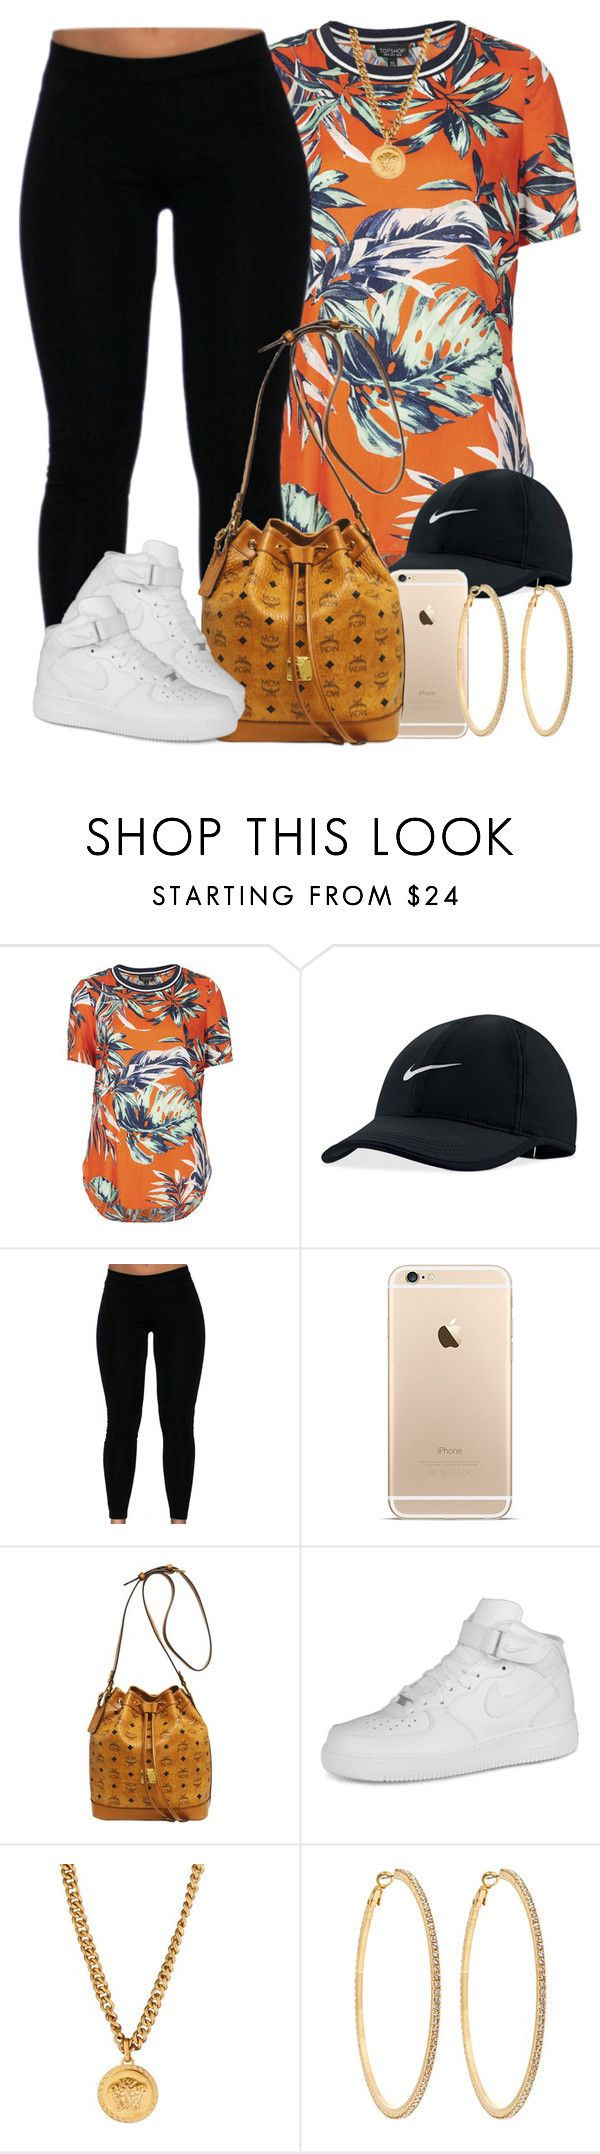 """Finally Friday "" by livelifefreelyy ❤ liked on Polyvore featuring Topshop, NIKE, MCM, Versace and Roberta Chiarella"